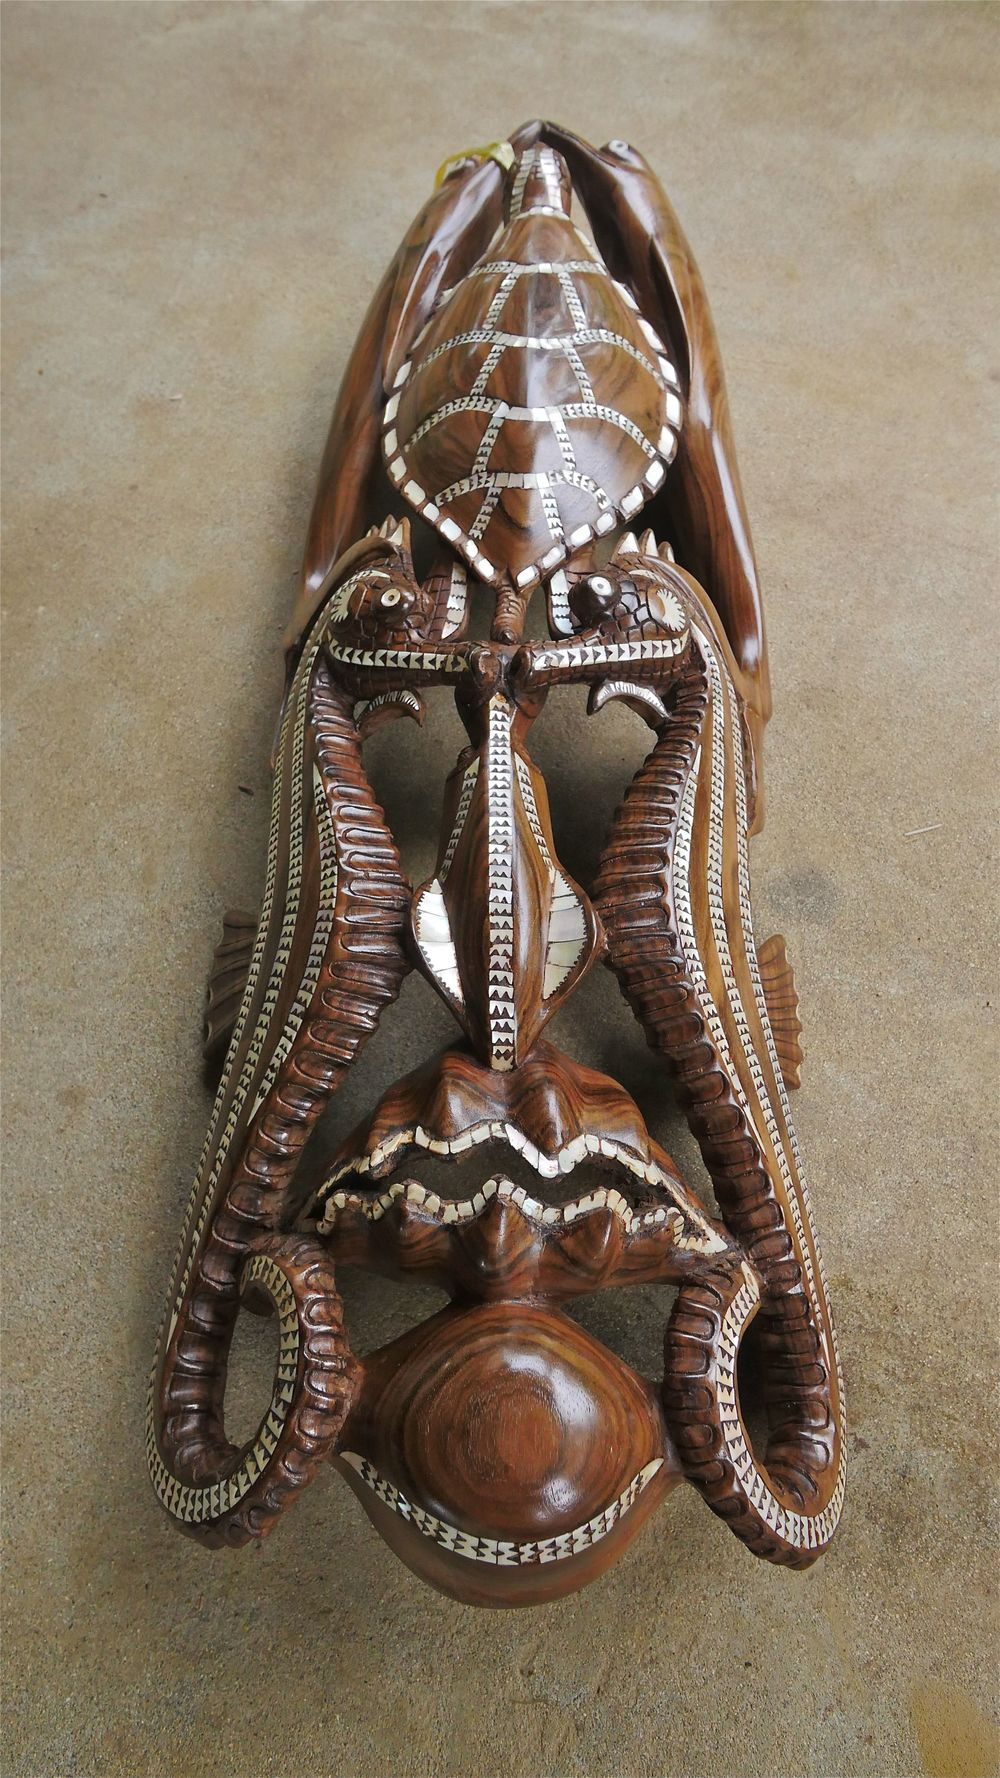 One of Maloe's artworks, made from local timber and nautilus shell. This mask represents the 'Spirit of Solomons' and is currently still for sale